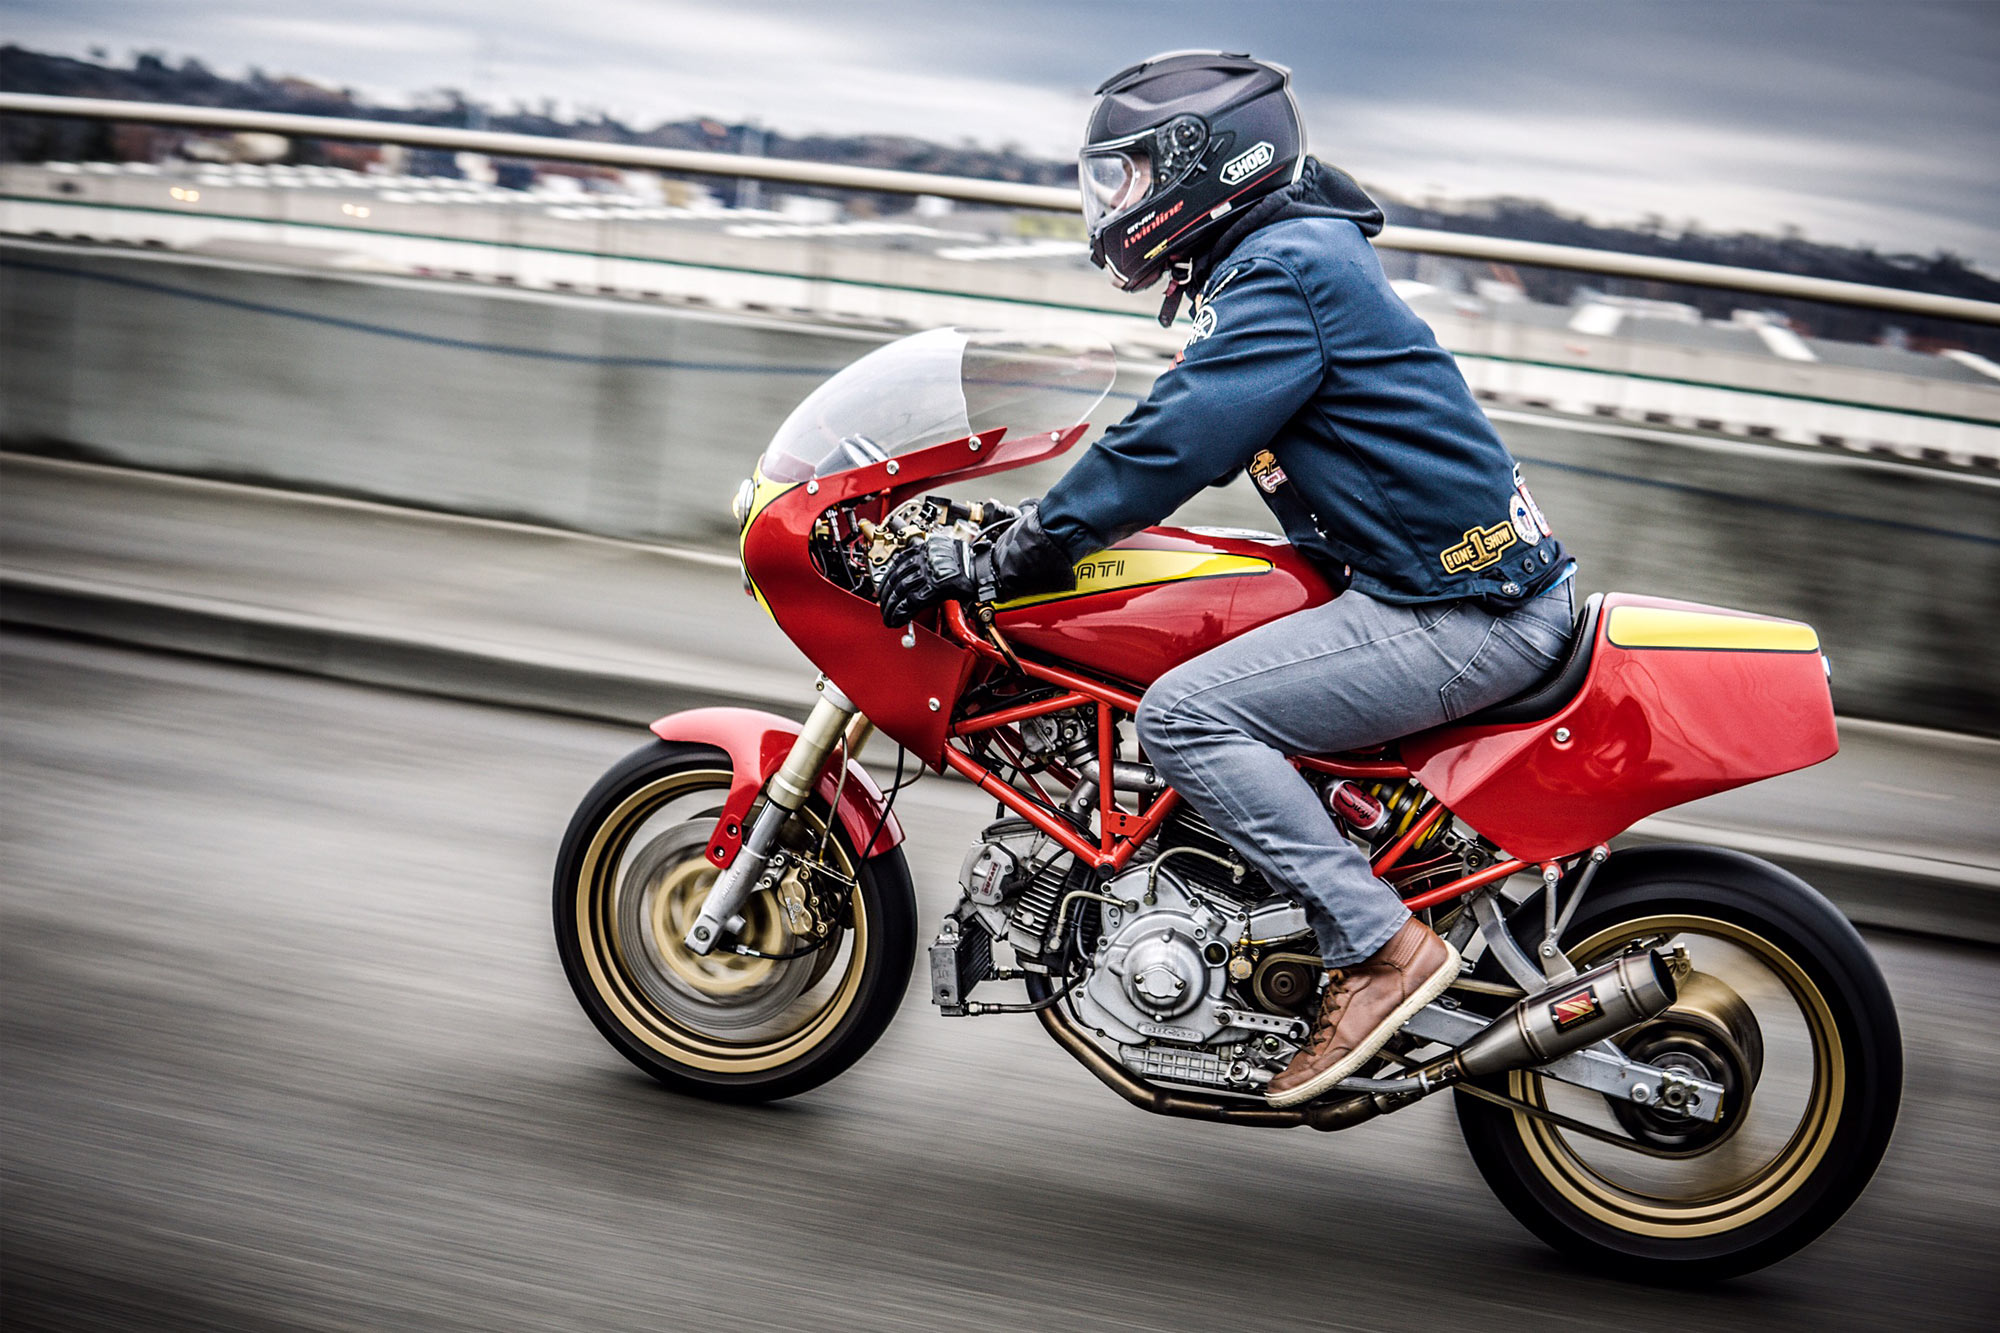 THE OLD BRIDGE AND THE V. Speedy Siegl Racing's Ducati 900SS Racer